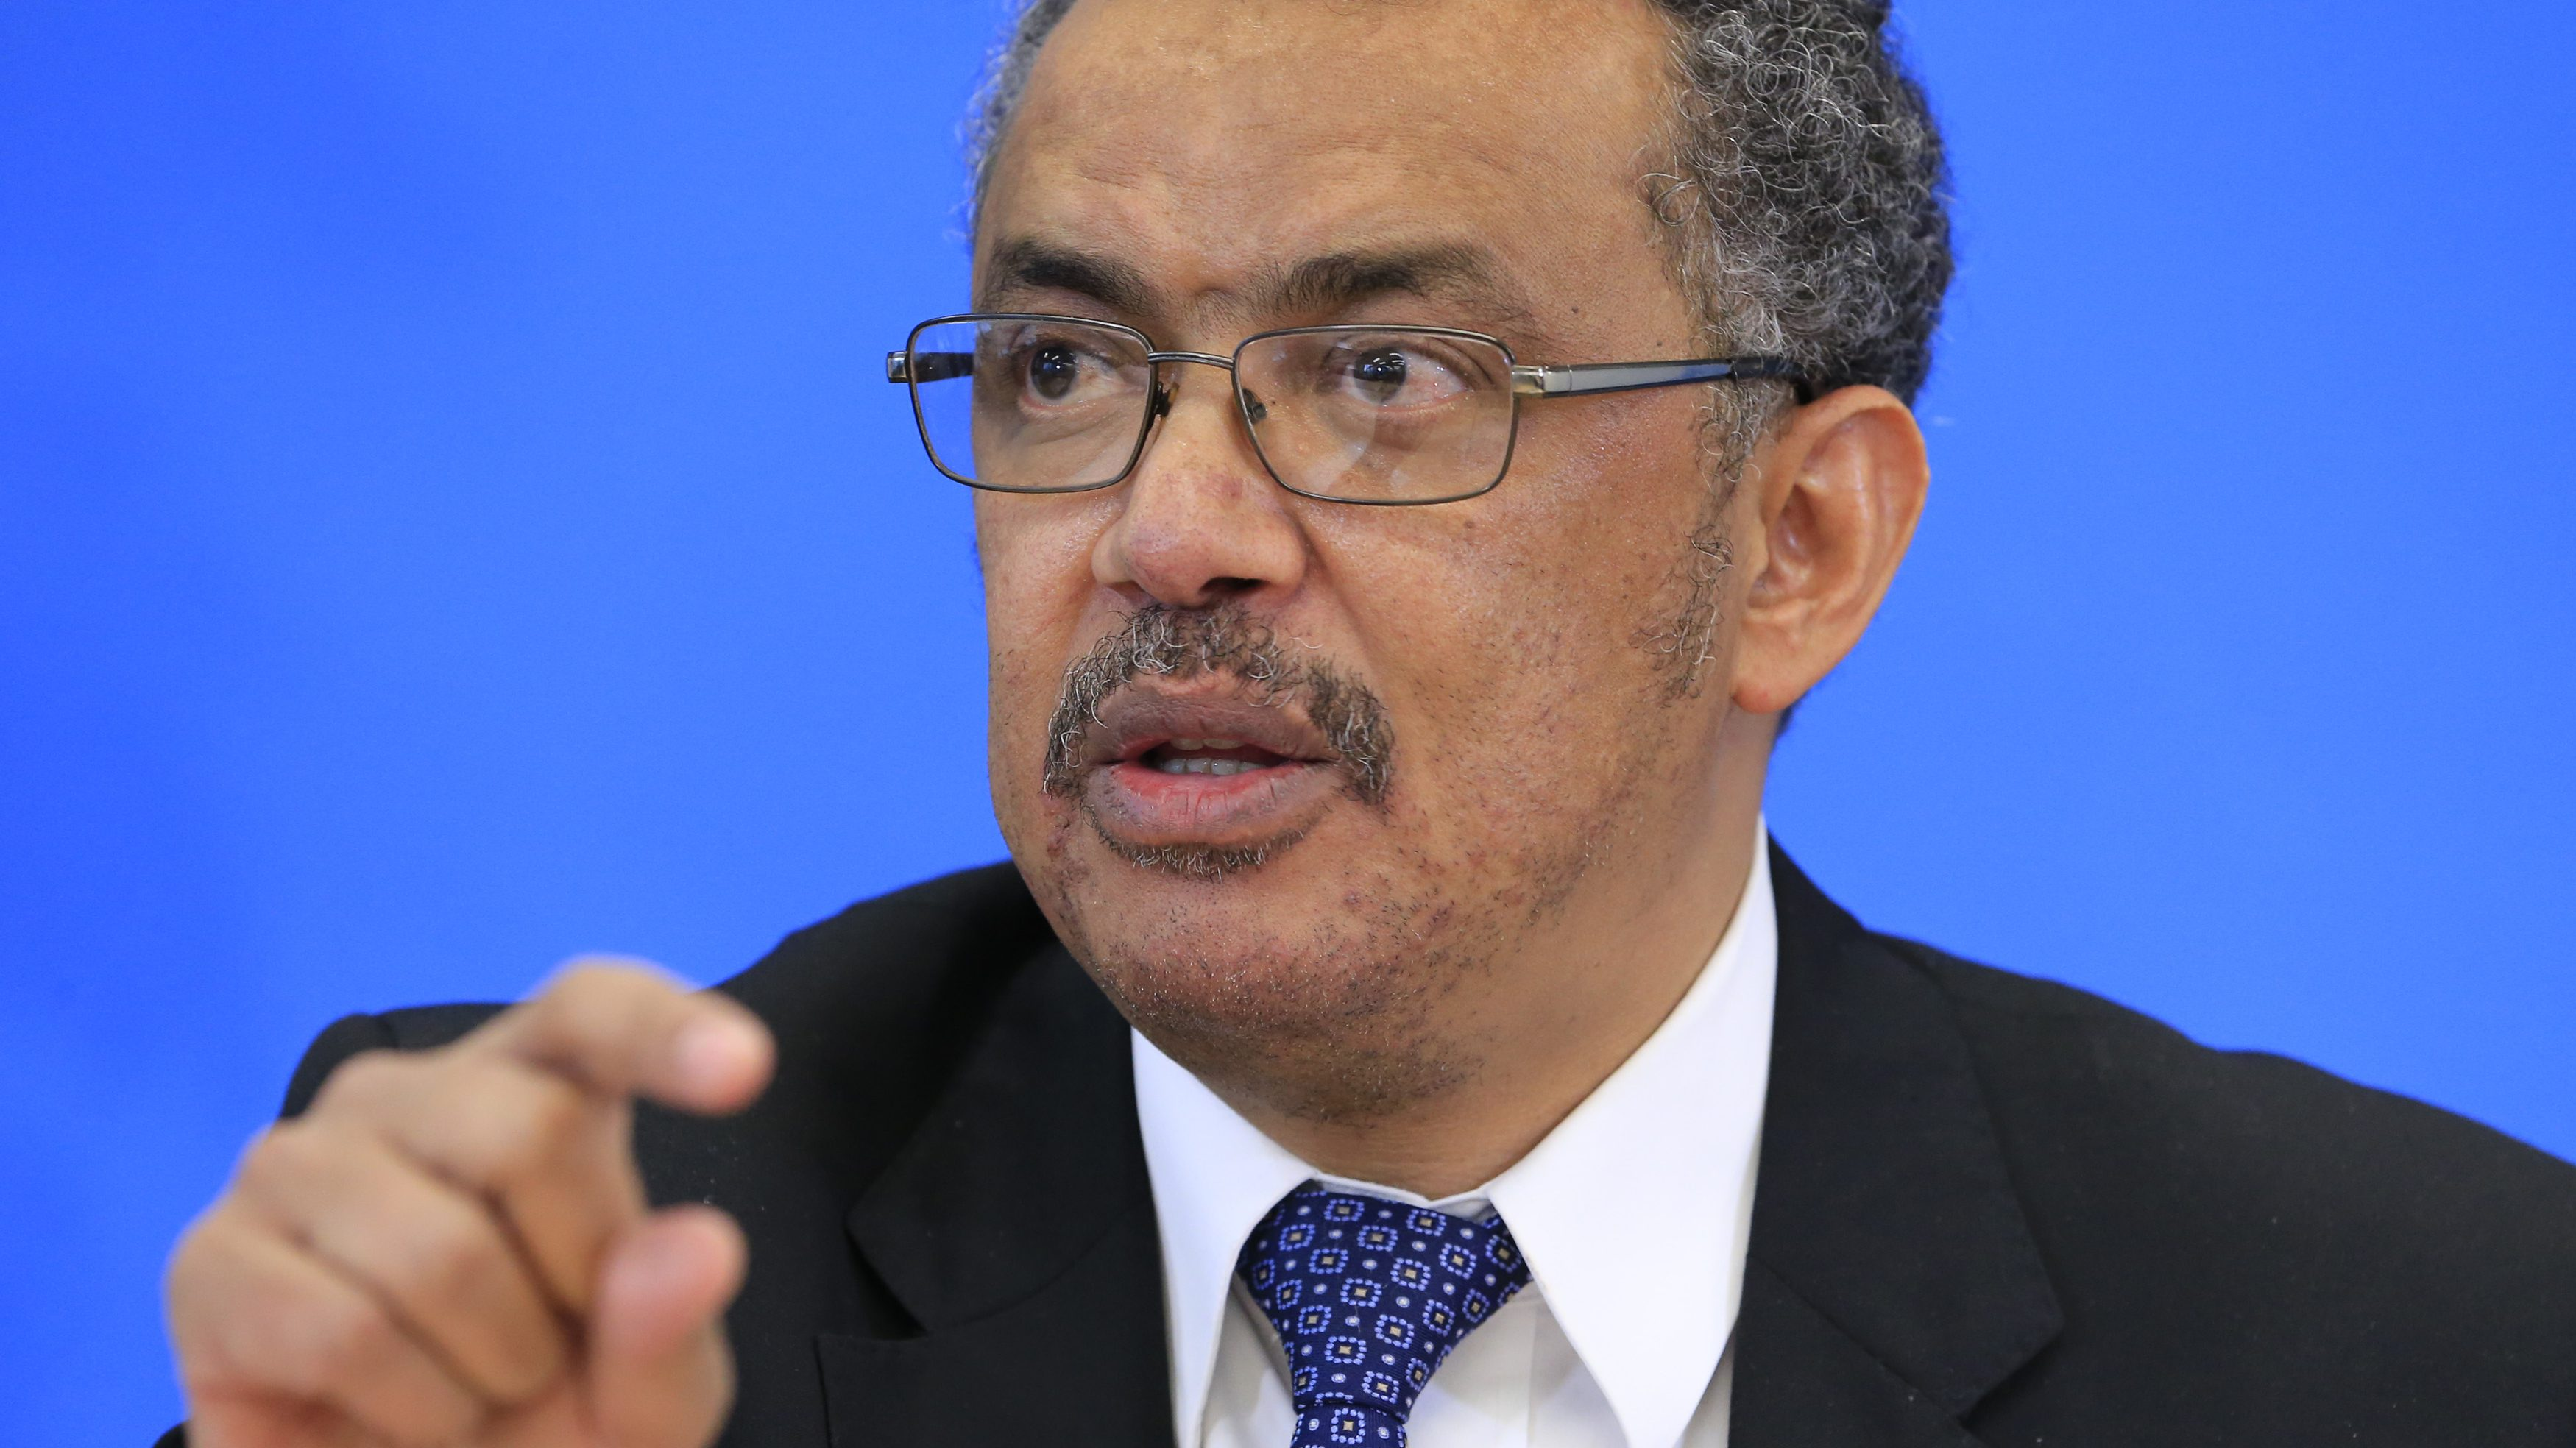 Ghebreyesus candidate for Director General of the WHO attends a news conference in Geneva